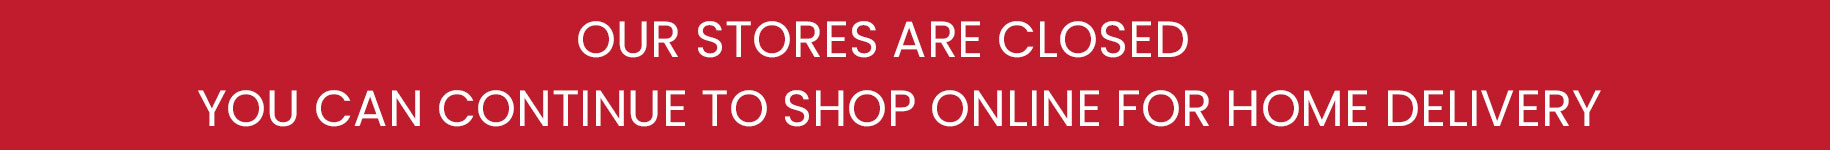 Our Shops are Closed. You can continue to shop online for Home Delivery.